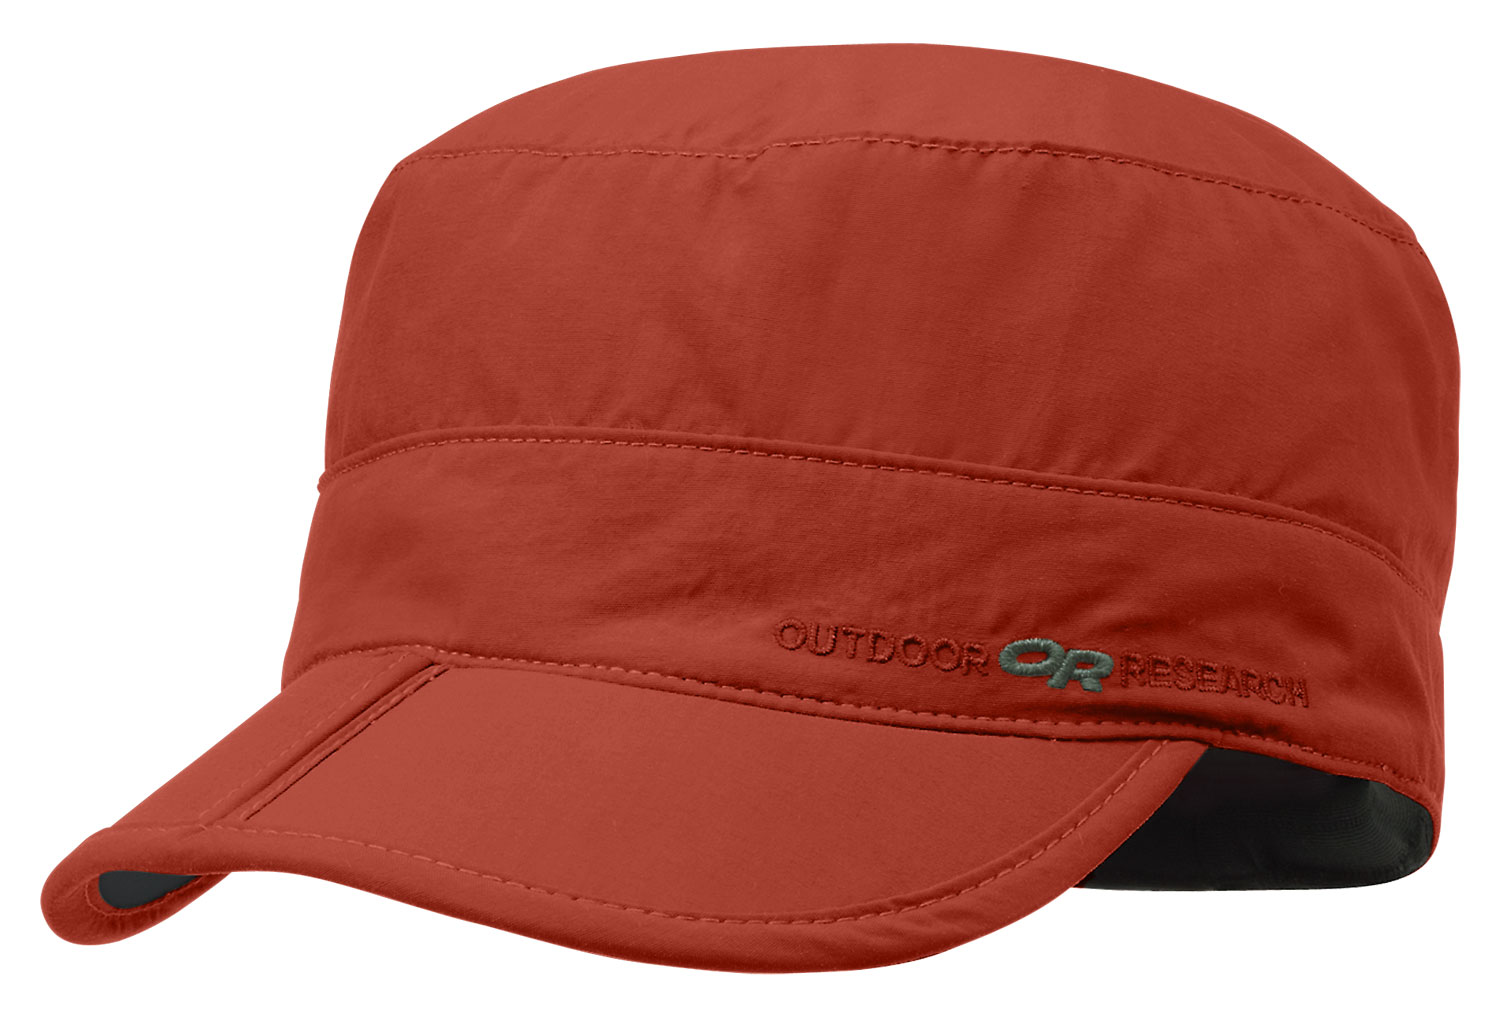 Key Features of the Outdoor Research Radar Pocket Hat: Supplex nylon fabric; UPF 30 + TransAction headband + Folding brim for easy storage in pocket - $19.95